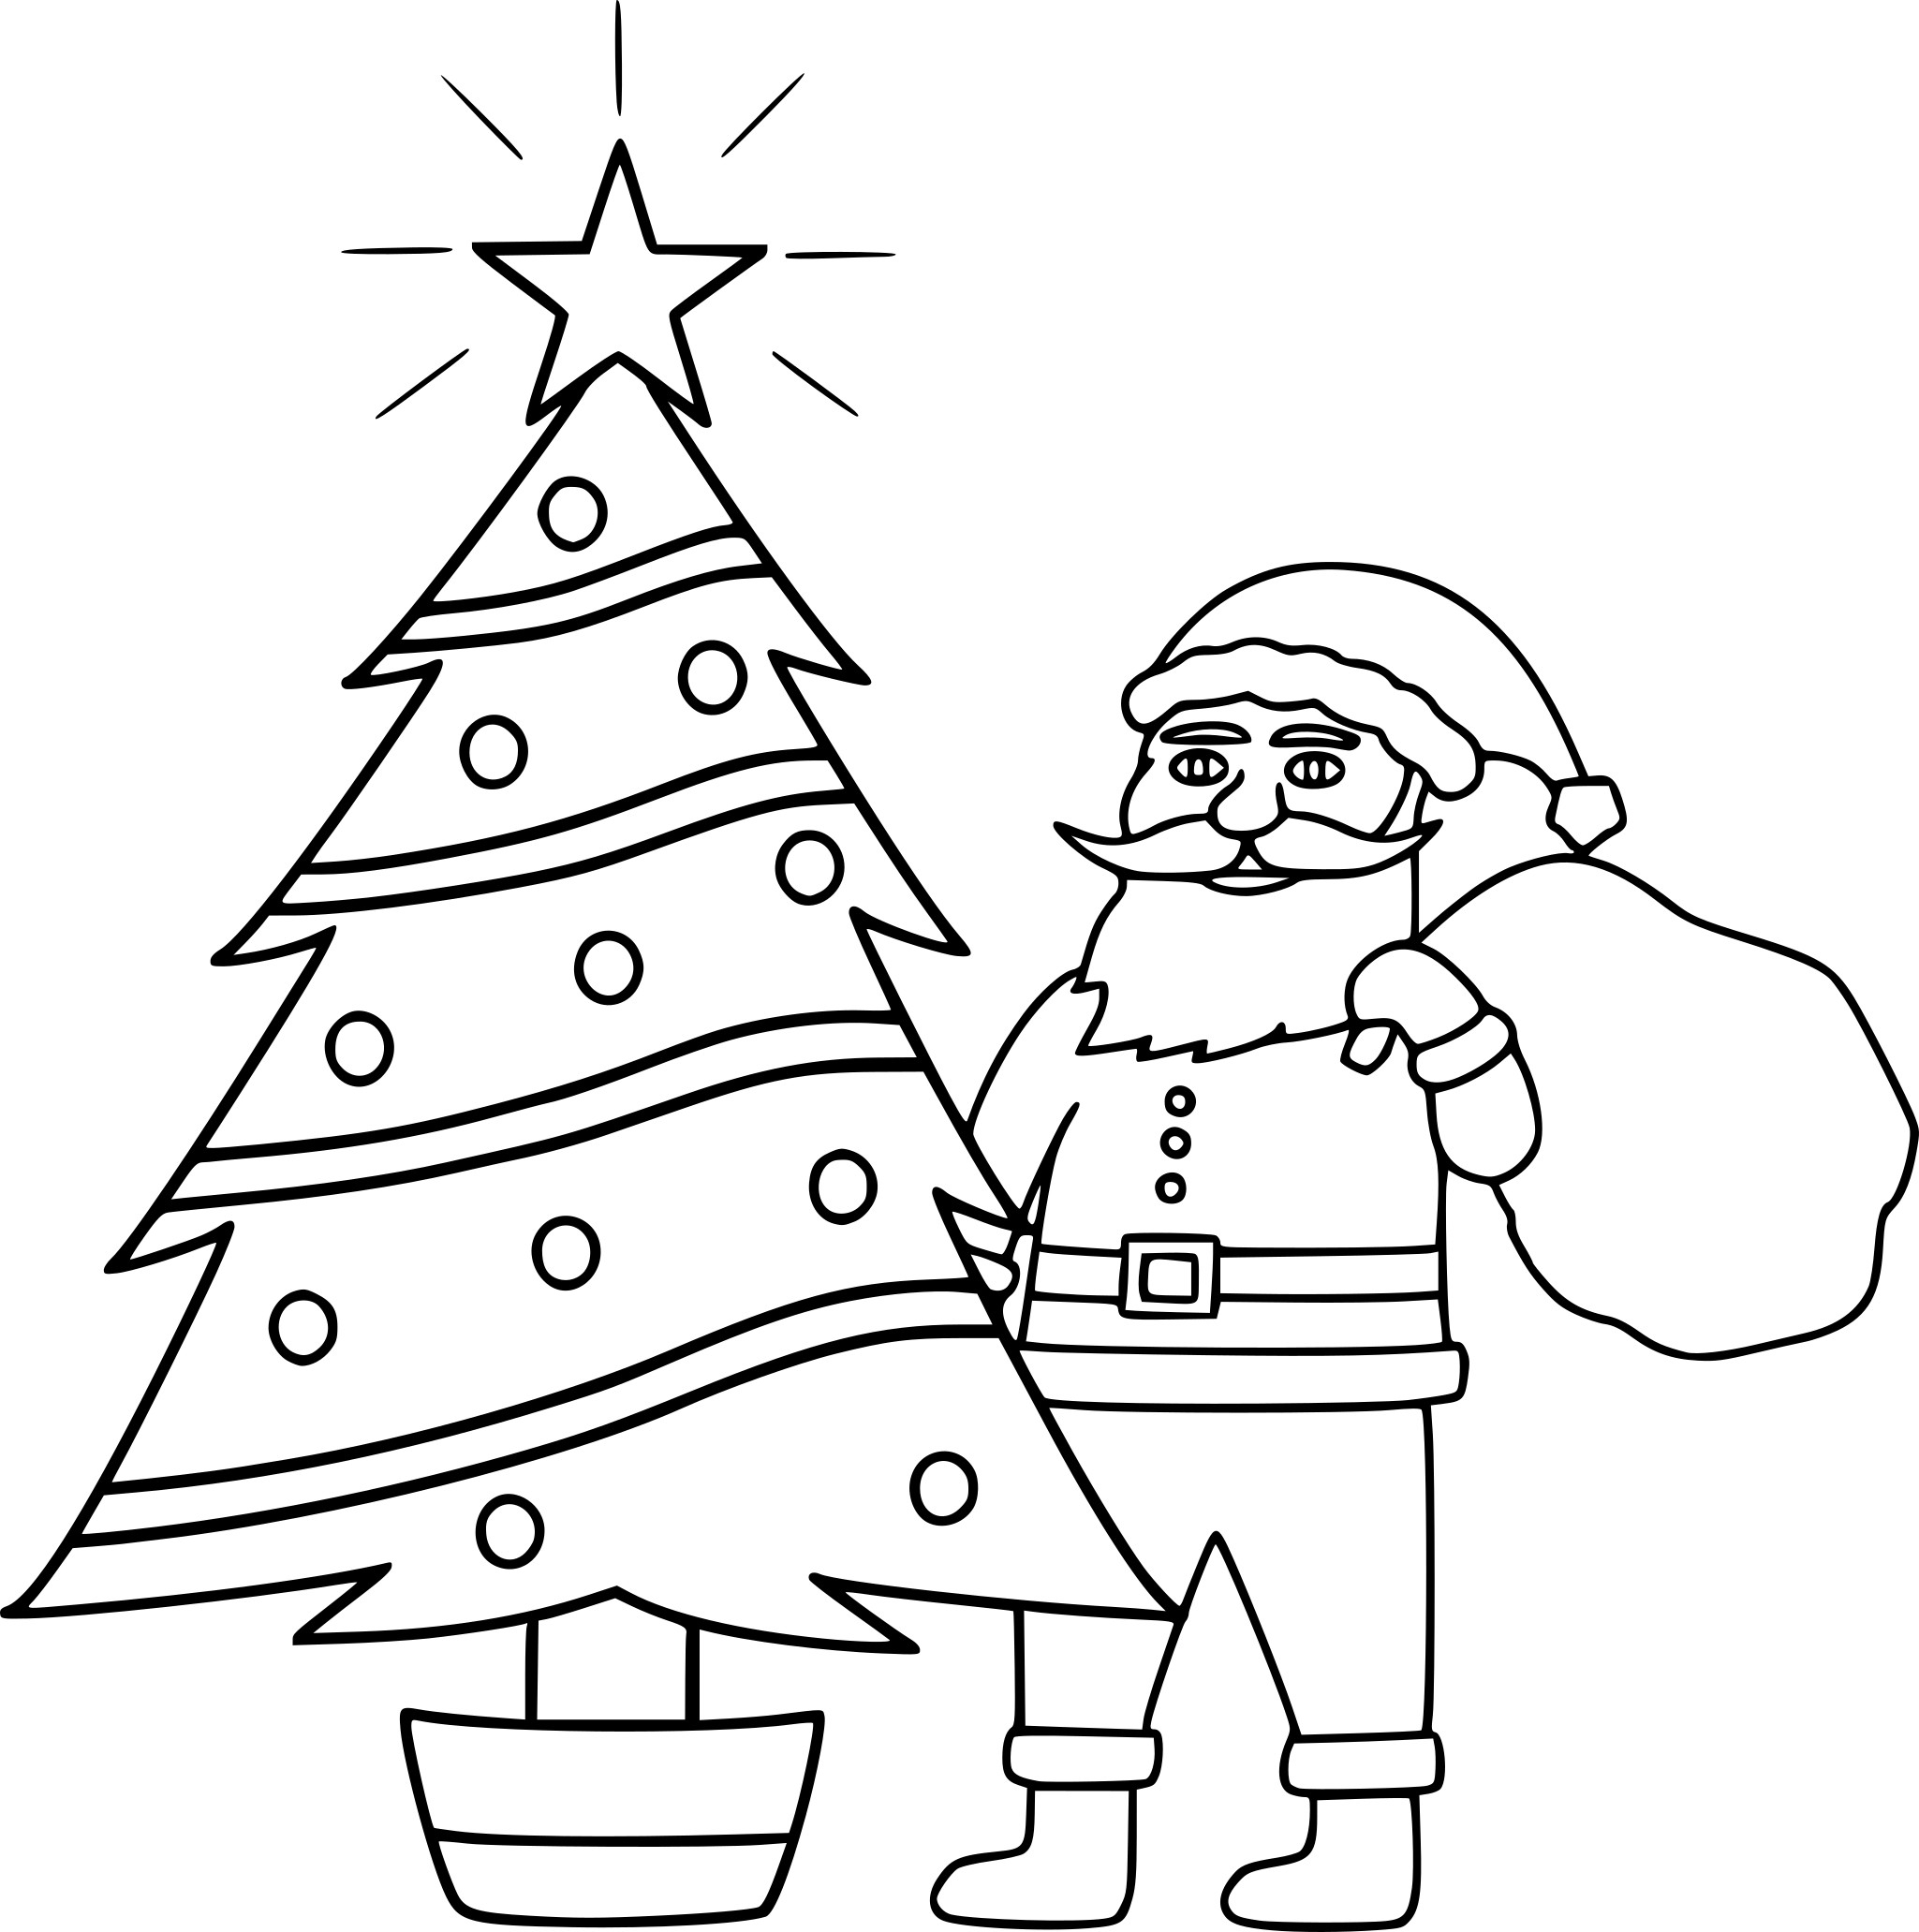 children coloring pages - pere noel et sapin de noel